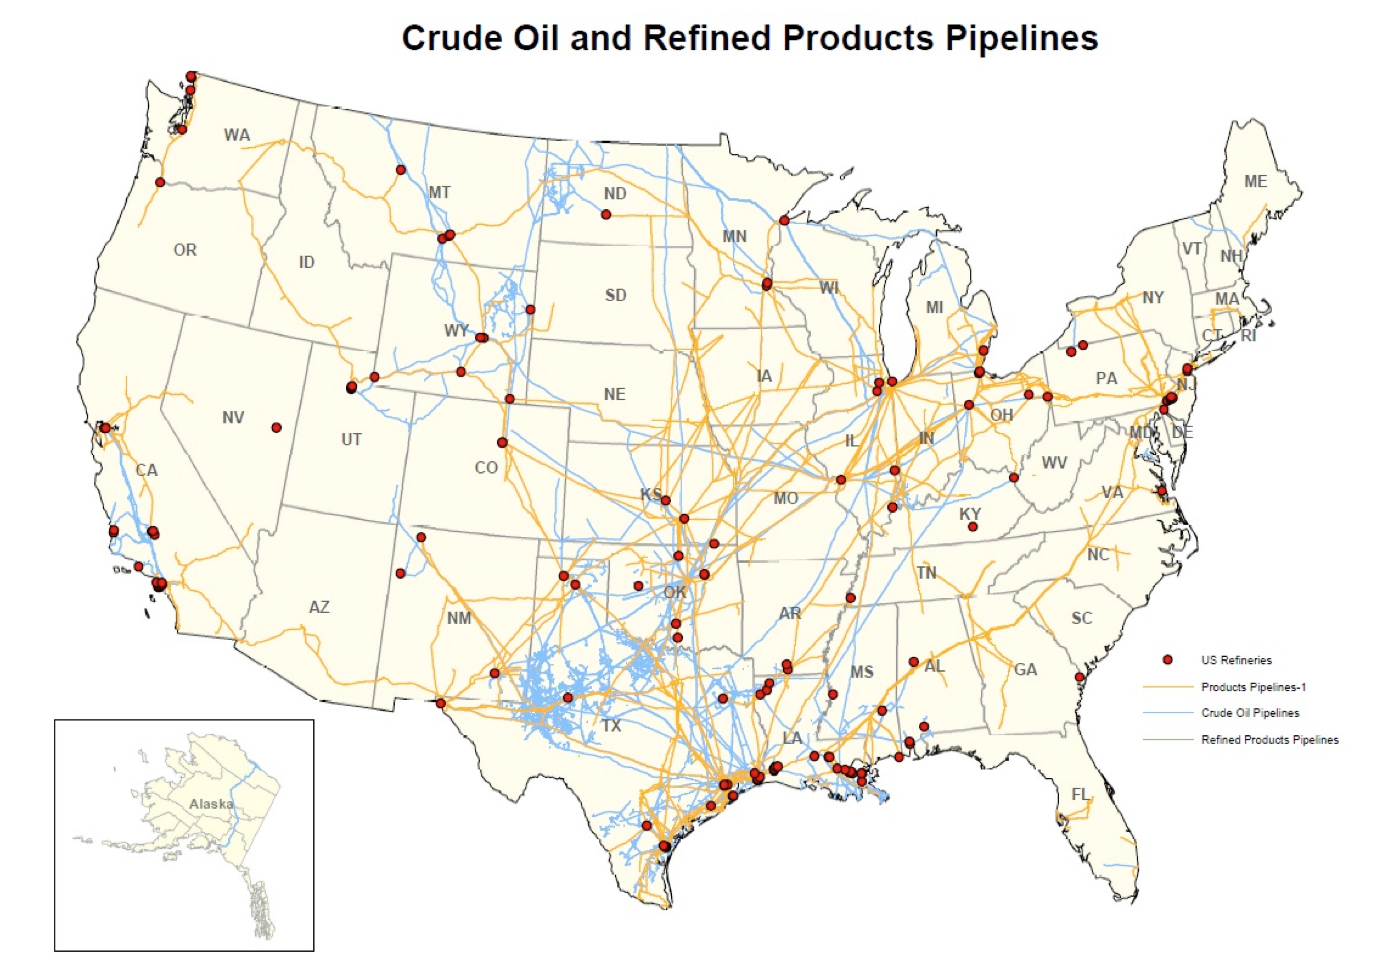 an impressive network of energy pipelines still needs some tlc